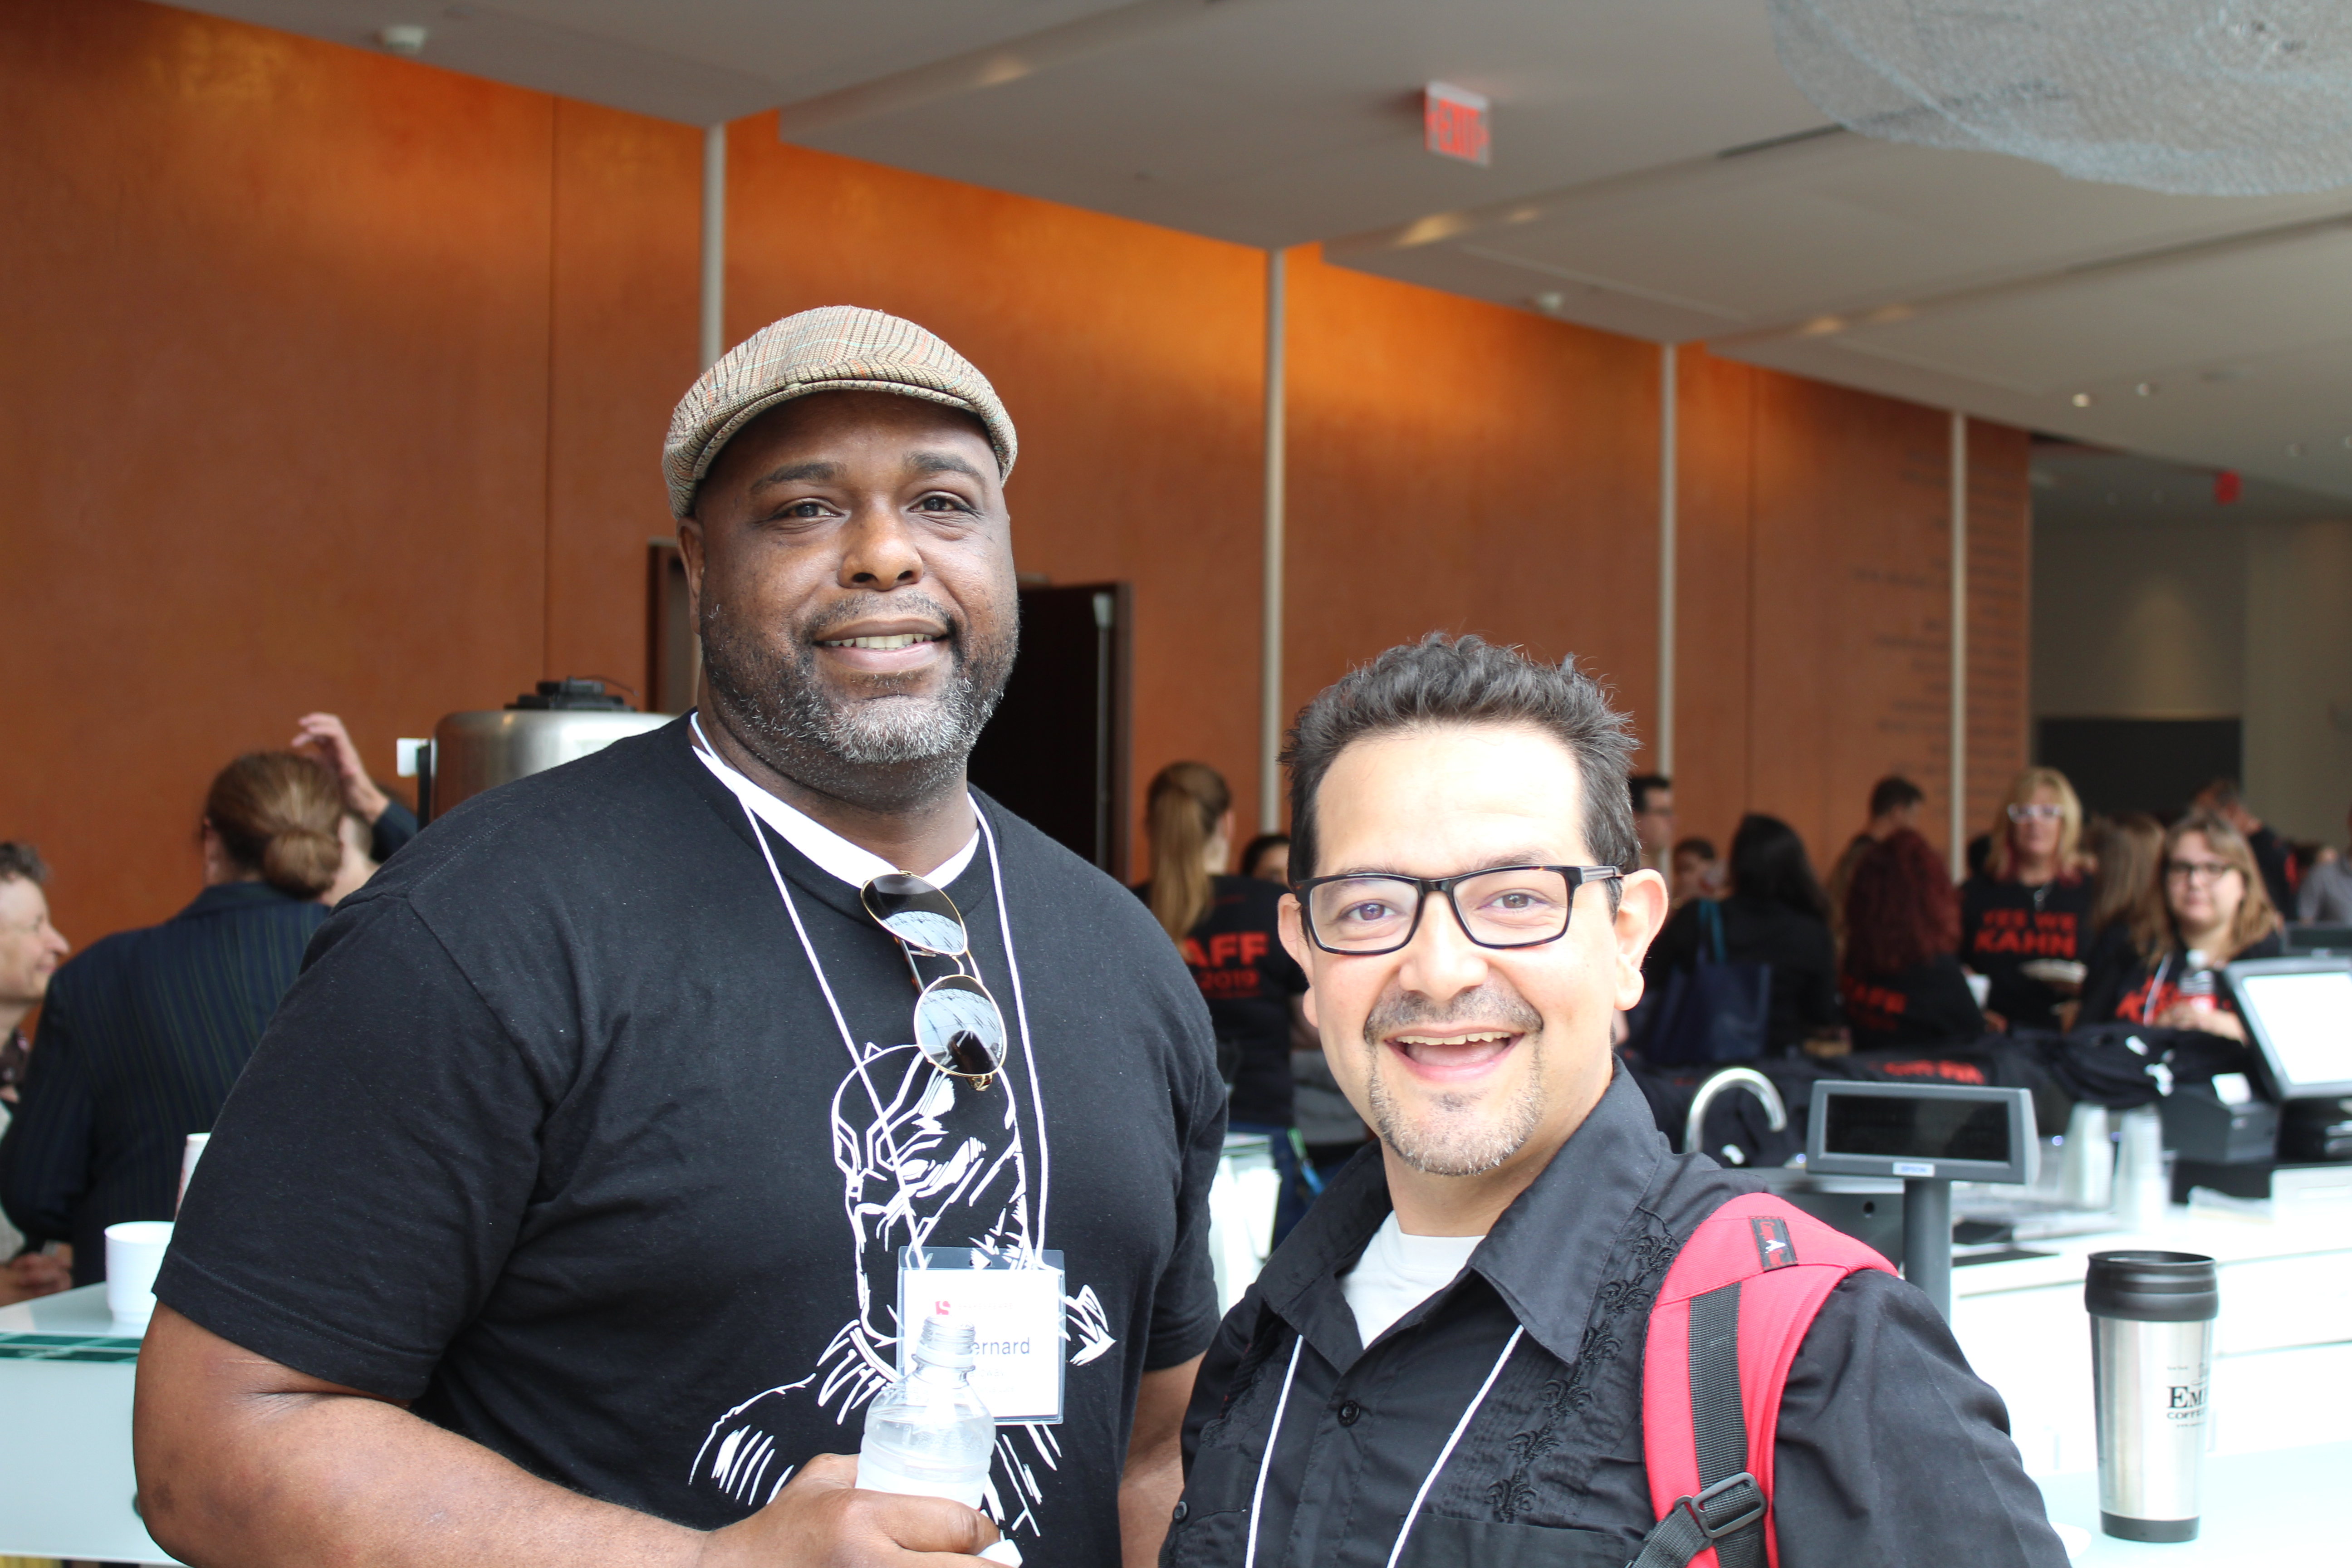 Photo of J. Bernard Calloway and Matt Zambrano at the first rehearsal of The Comedy of Errors.